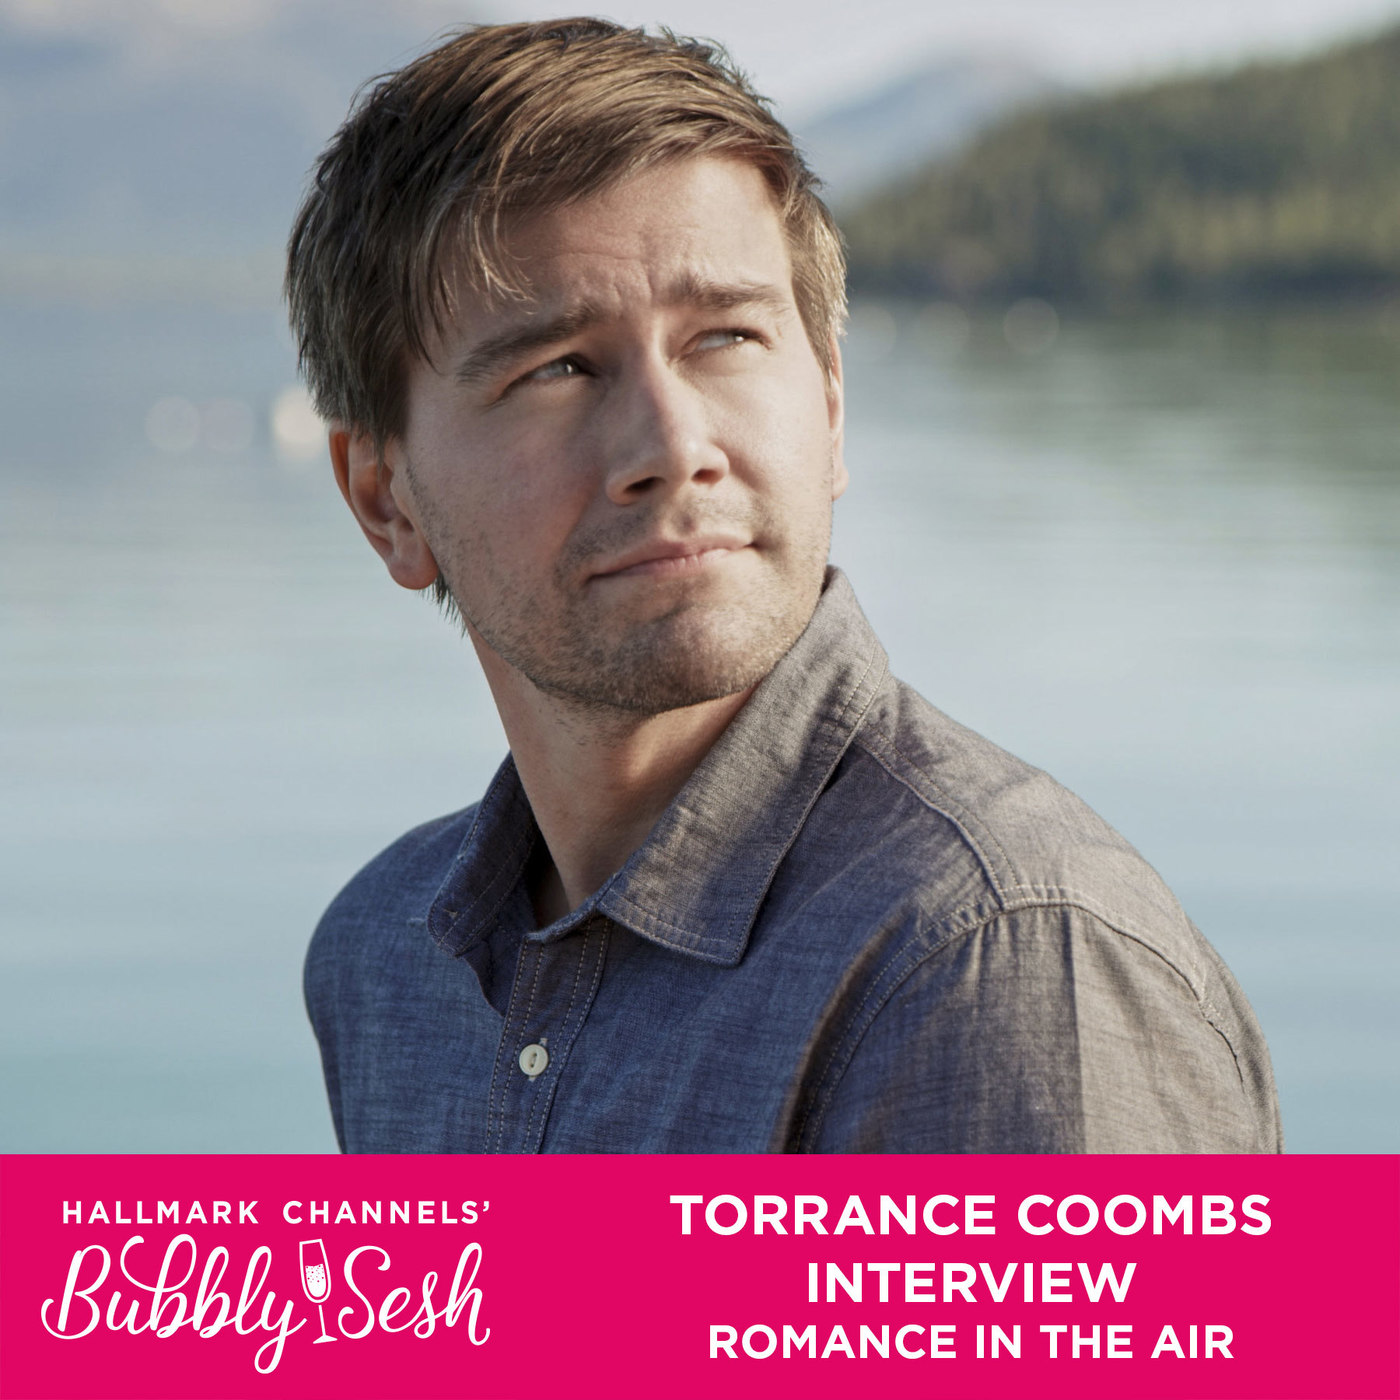 Torrance Coombs Interview, Romance in the Air